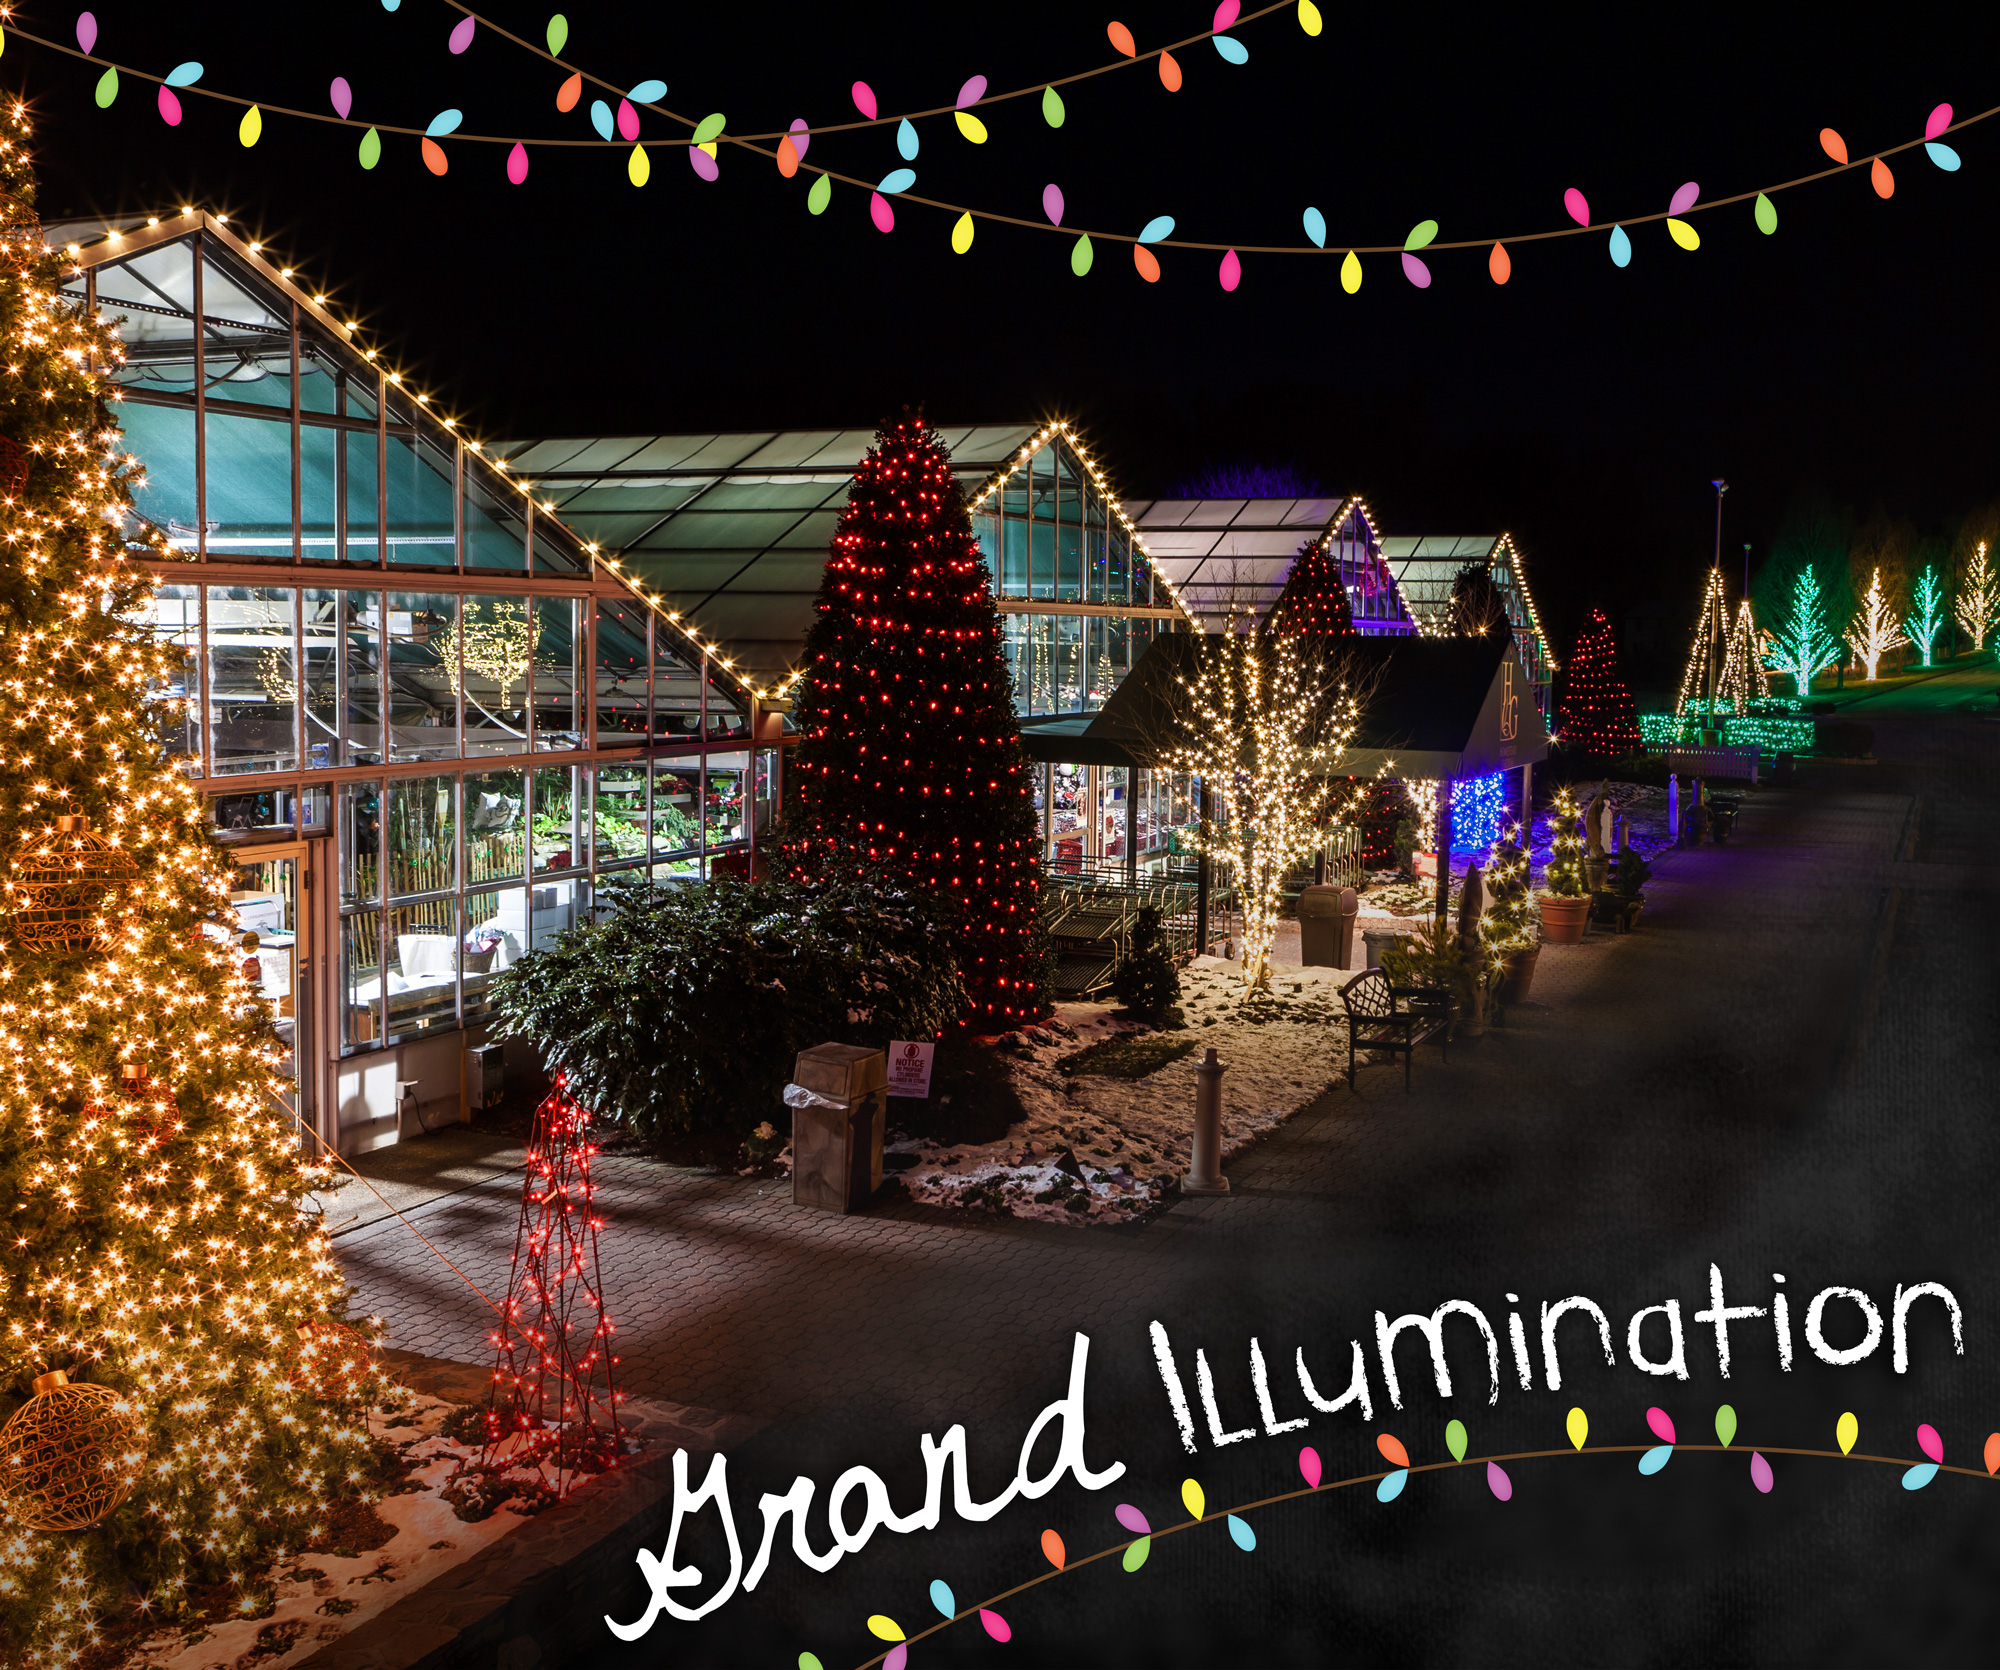 Homestead Gardens Landscaping: Grand Illumination - Homestead Gardens